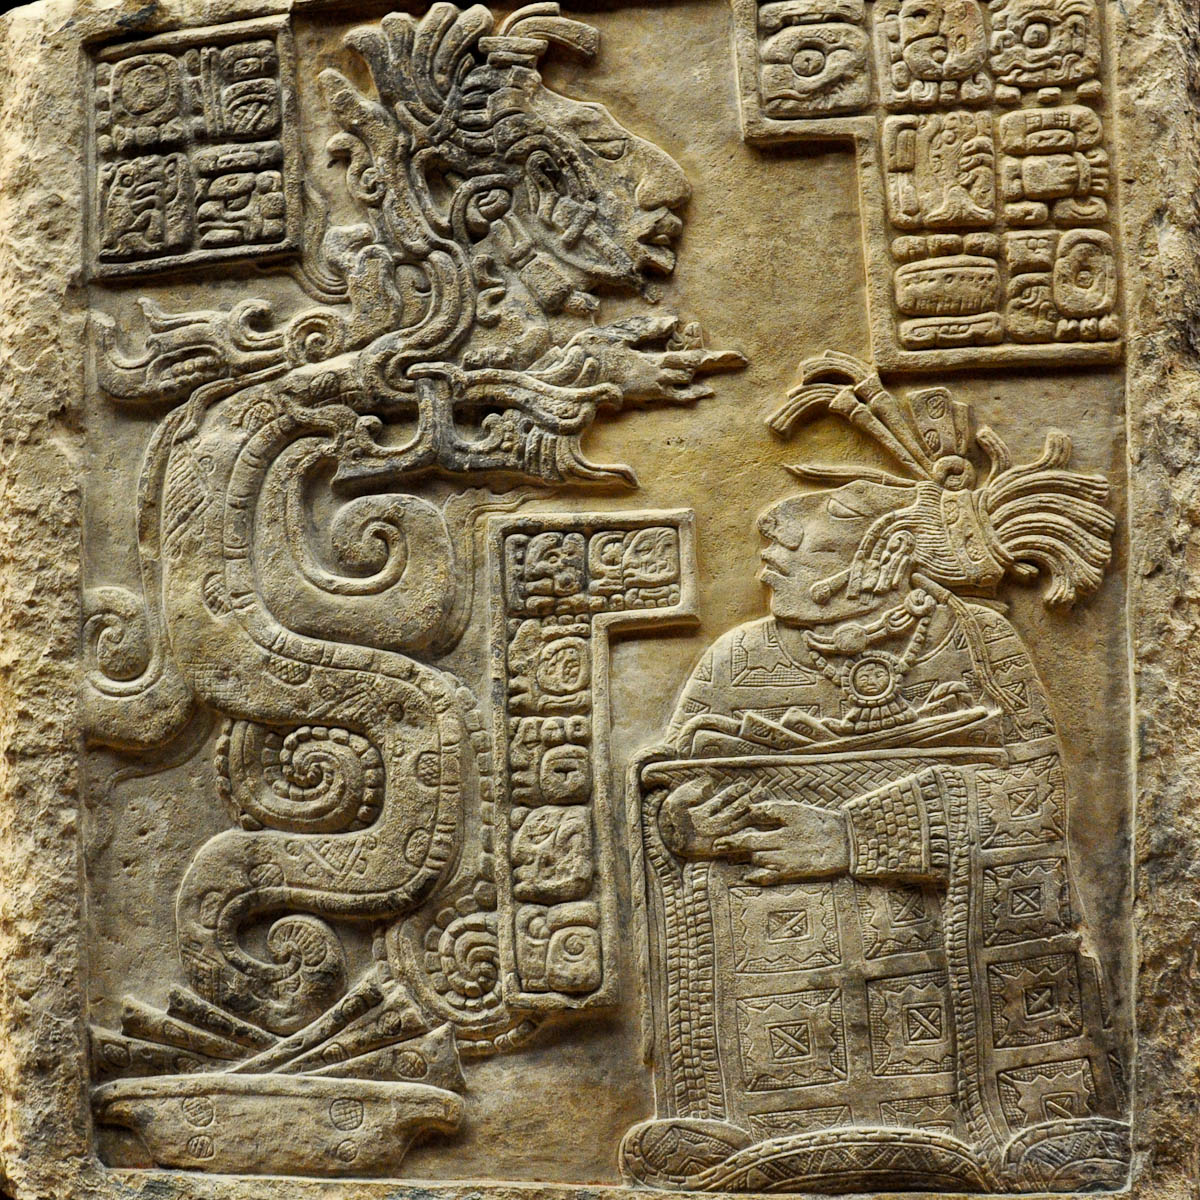 Lintel from Mexico, The British Museum, London, UK